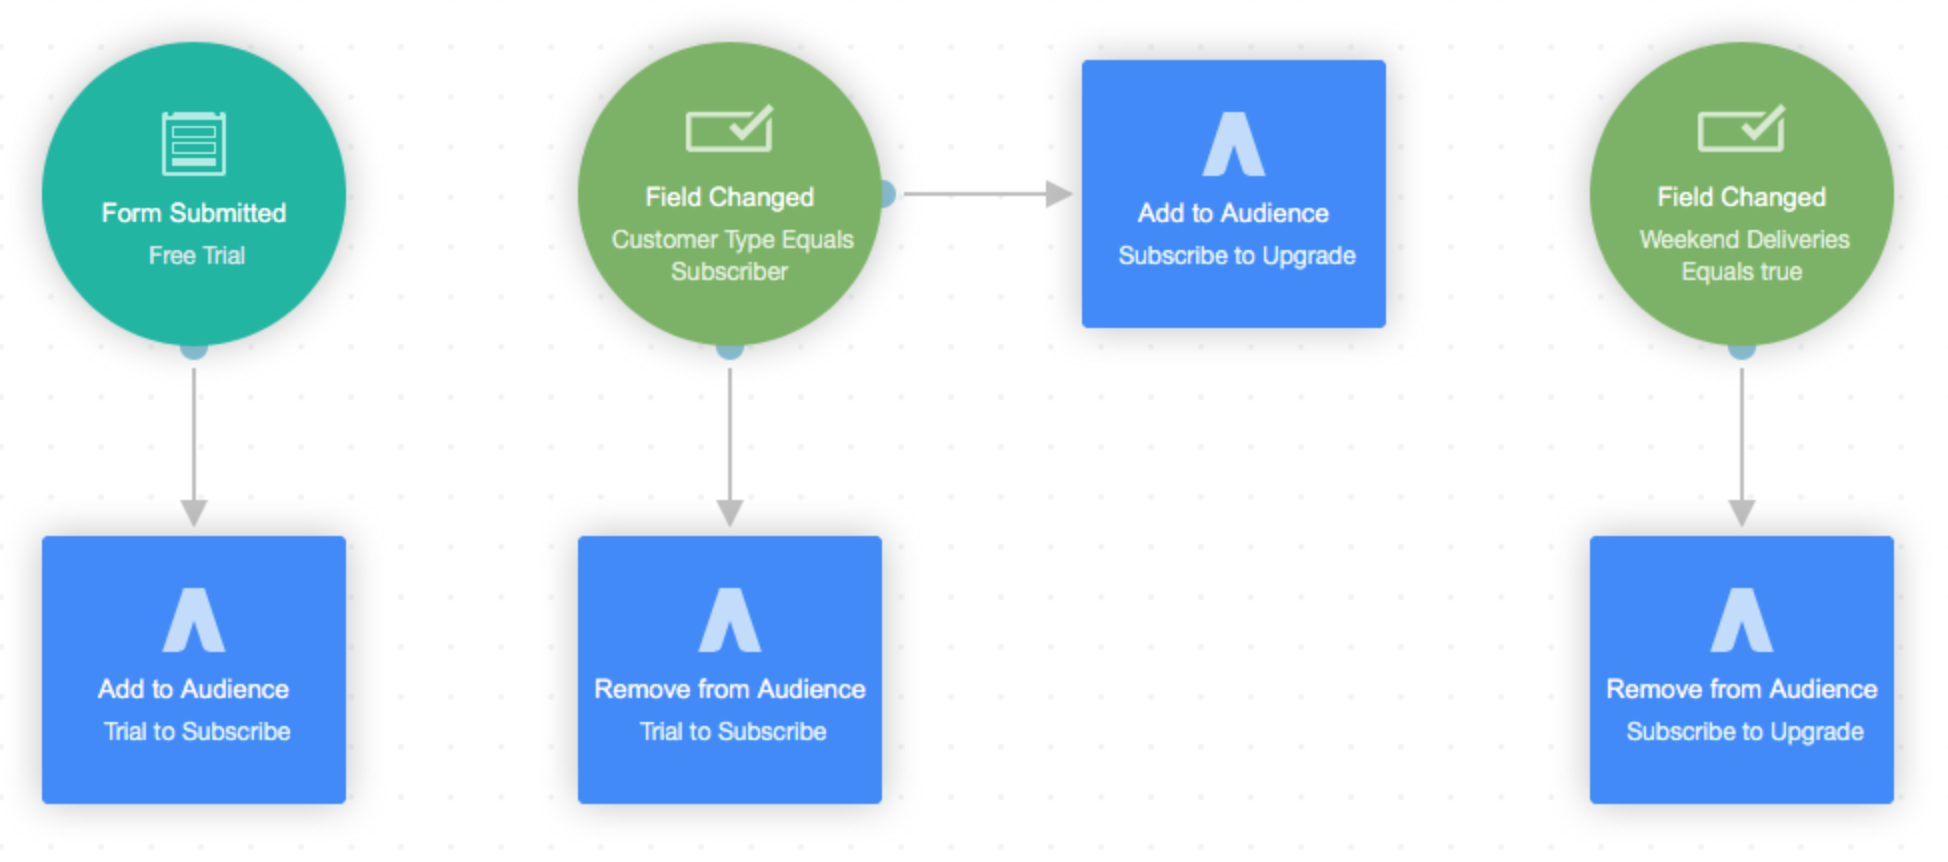 Manage_Adwords_Google_Custom_Audiences_with_Marketing_Automation.png